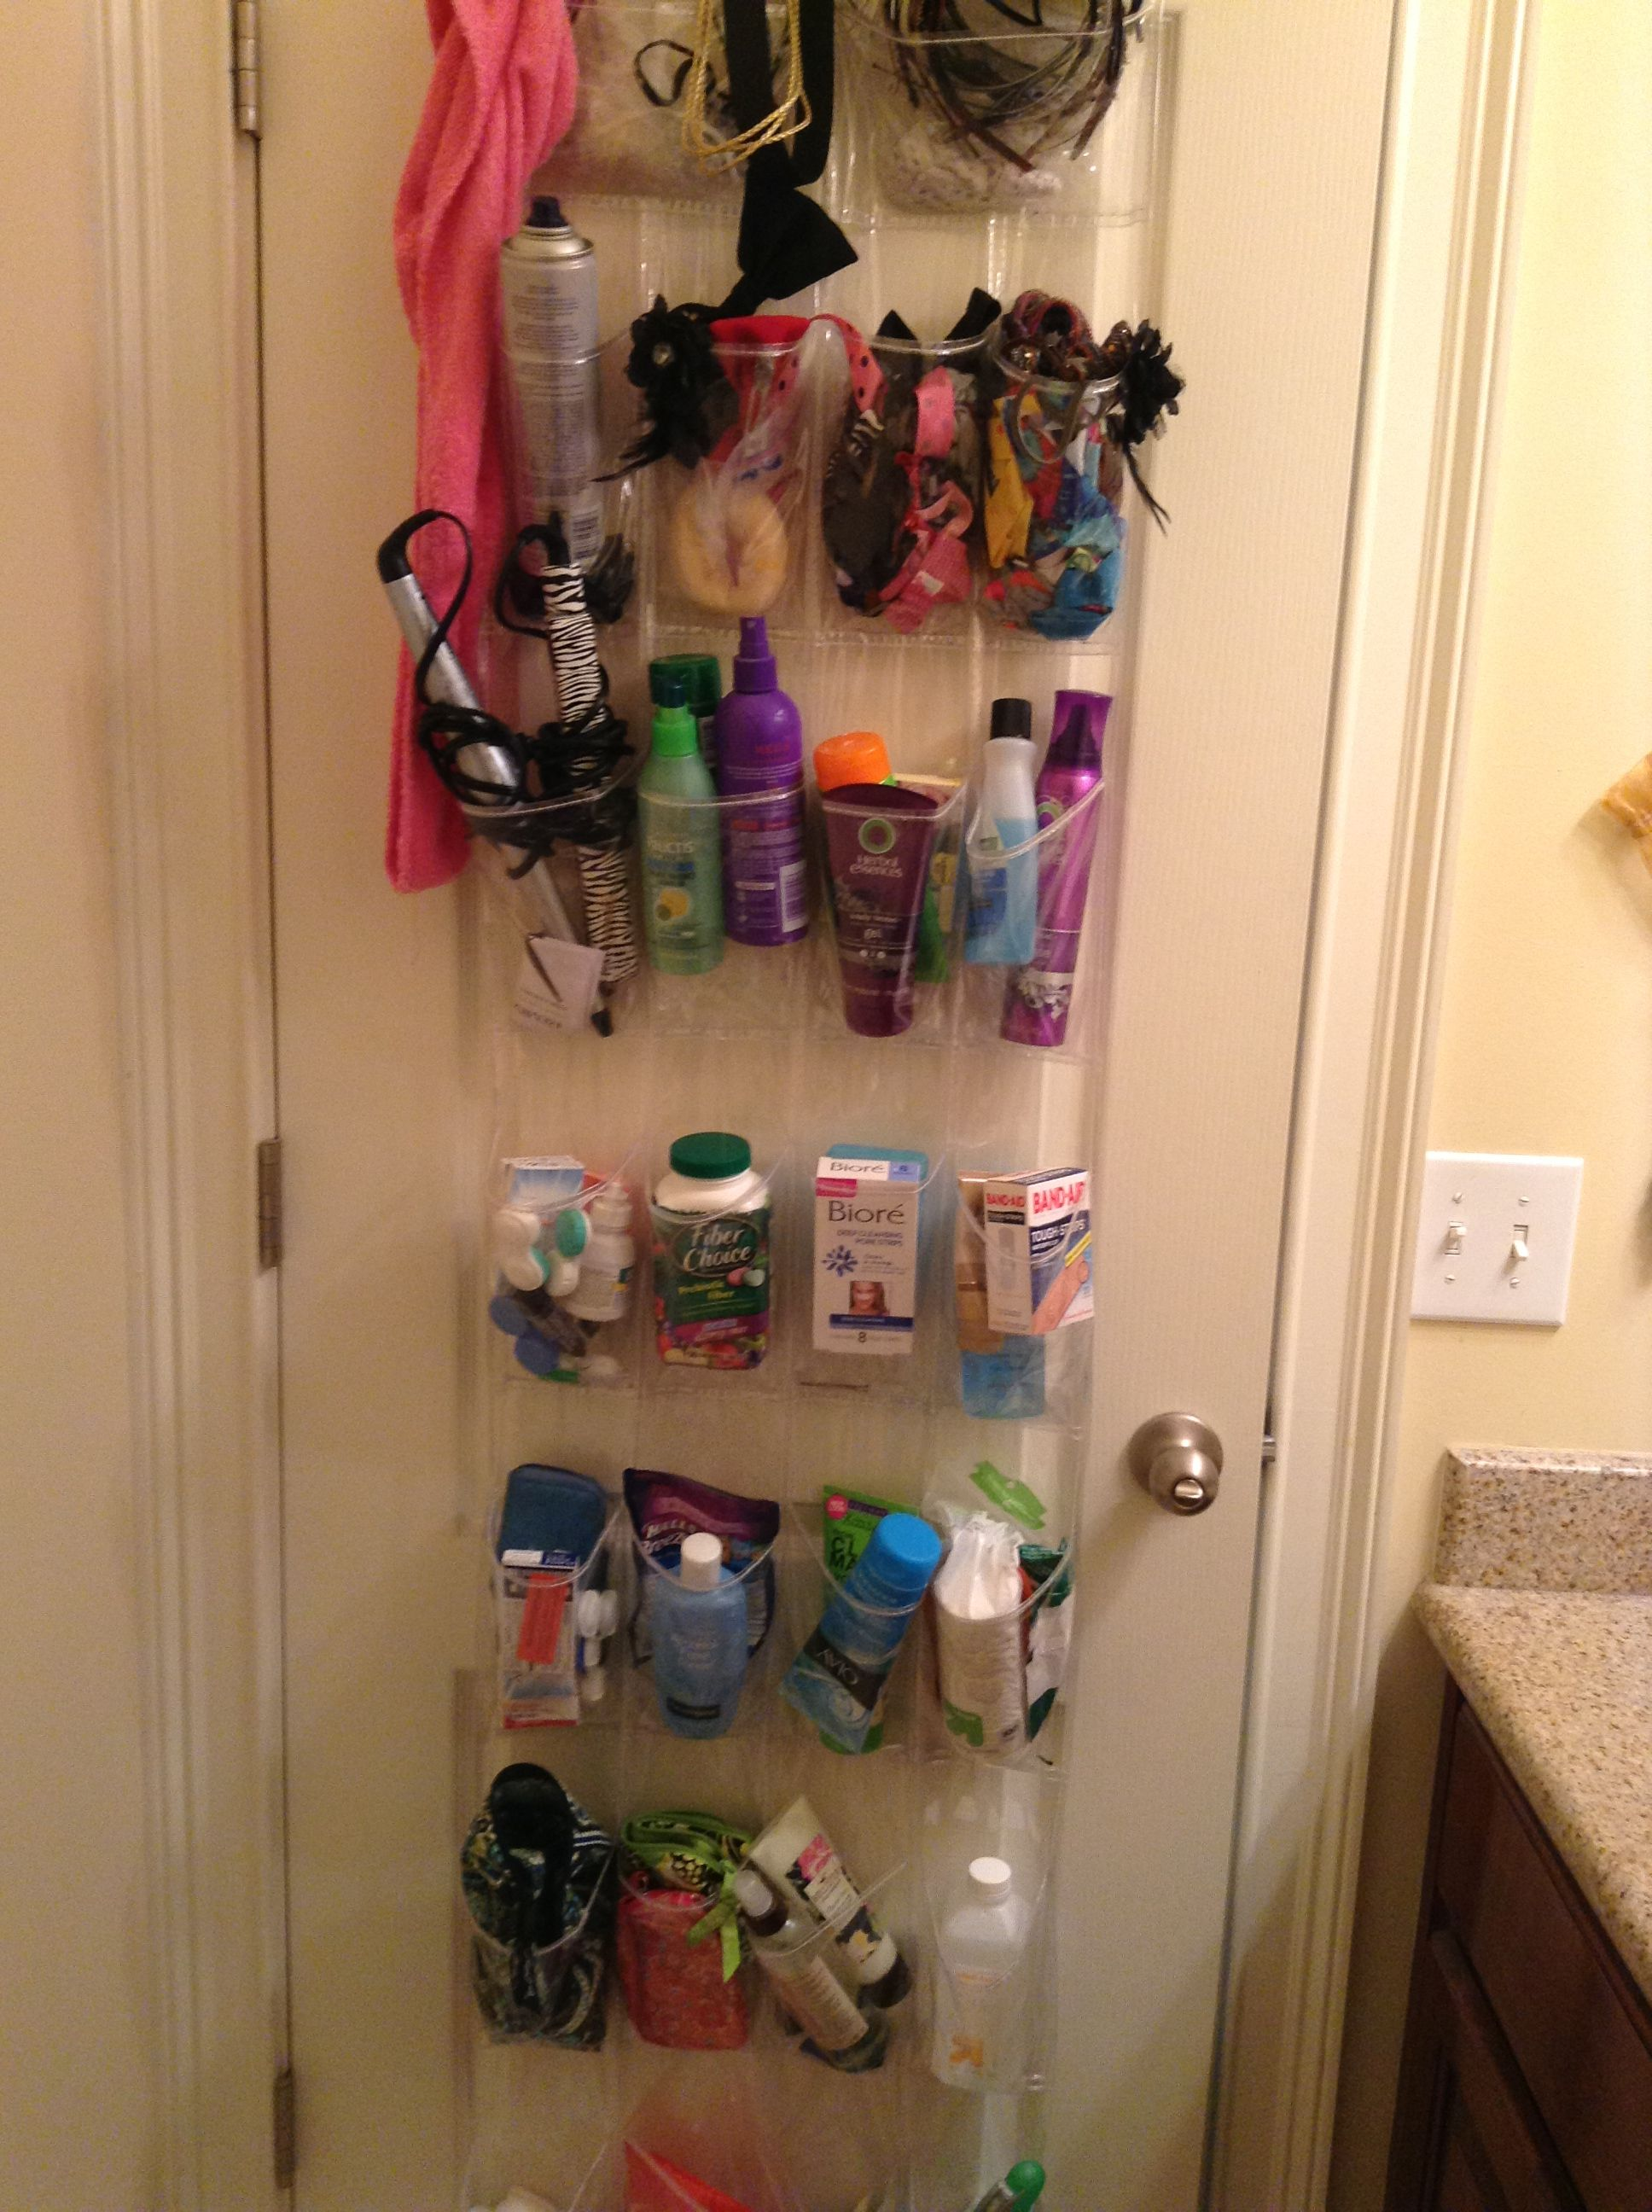 Small Bathroom Solution Hang A Shoe Organizer Over The Door And Use It For Toiletries This